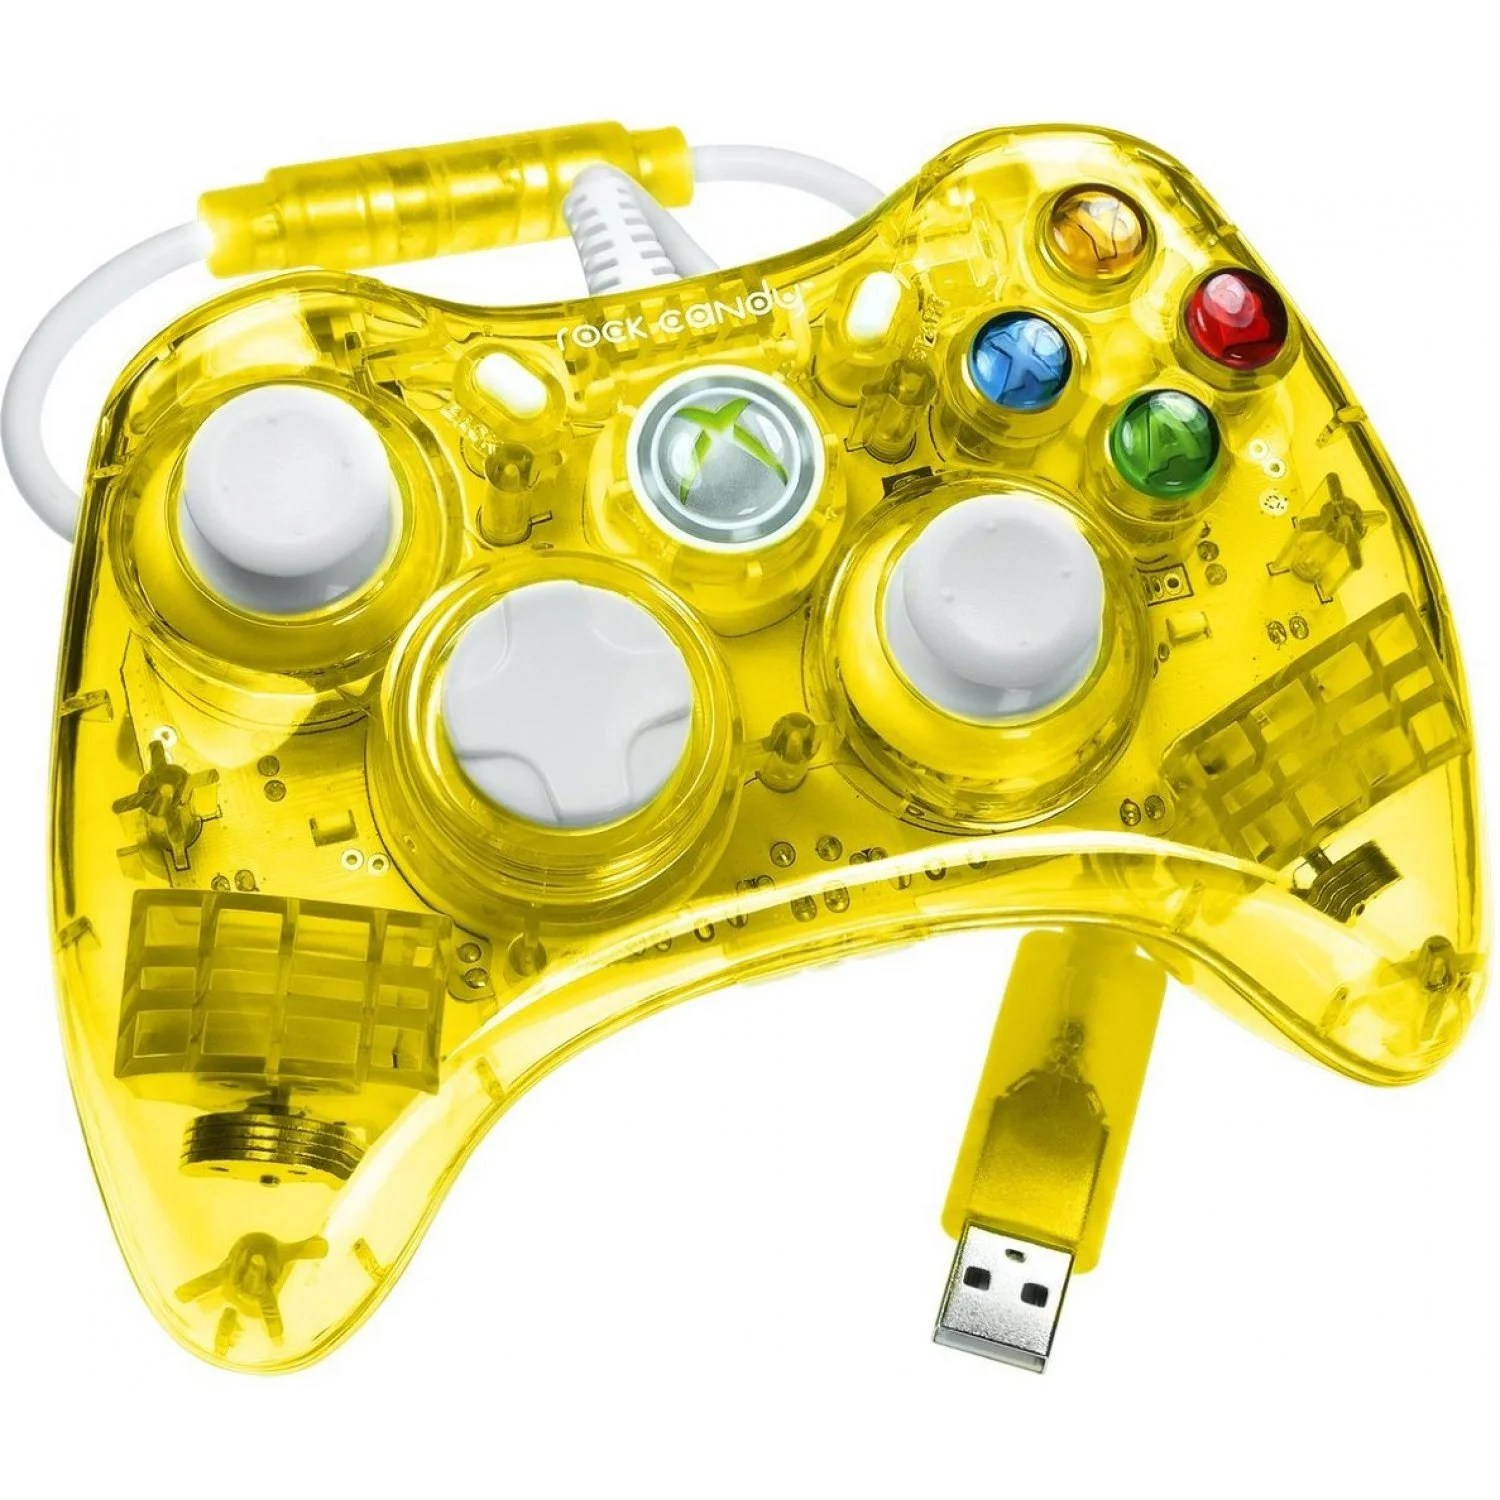 small resolution of rock candy xbox 360 wired controller yellow 331951 1 jpg o3hx39